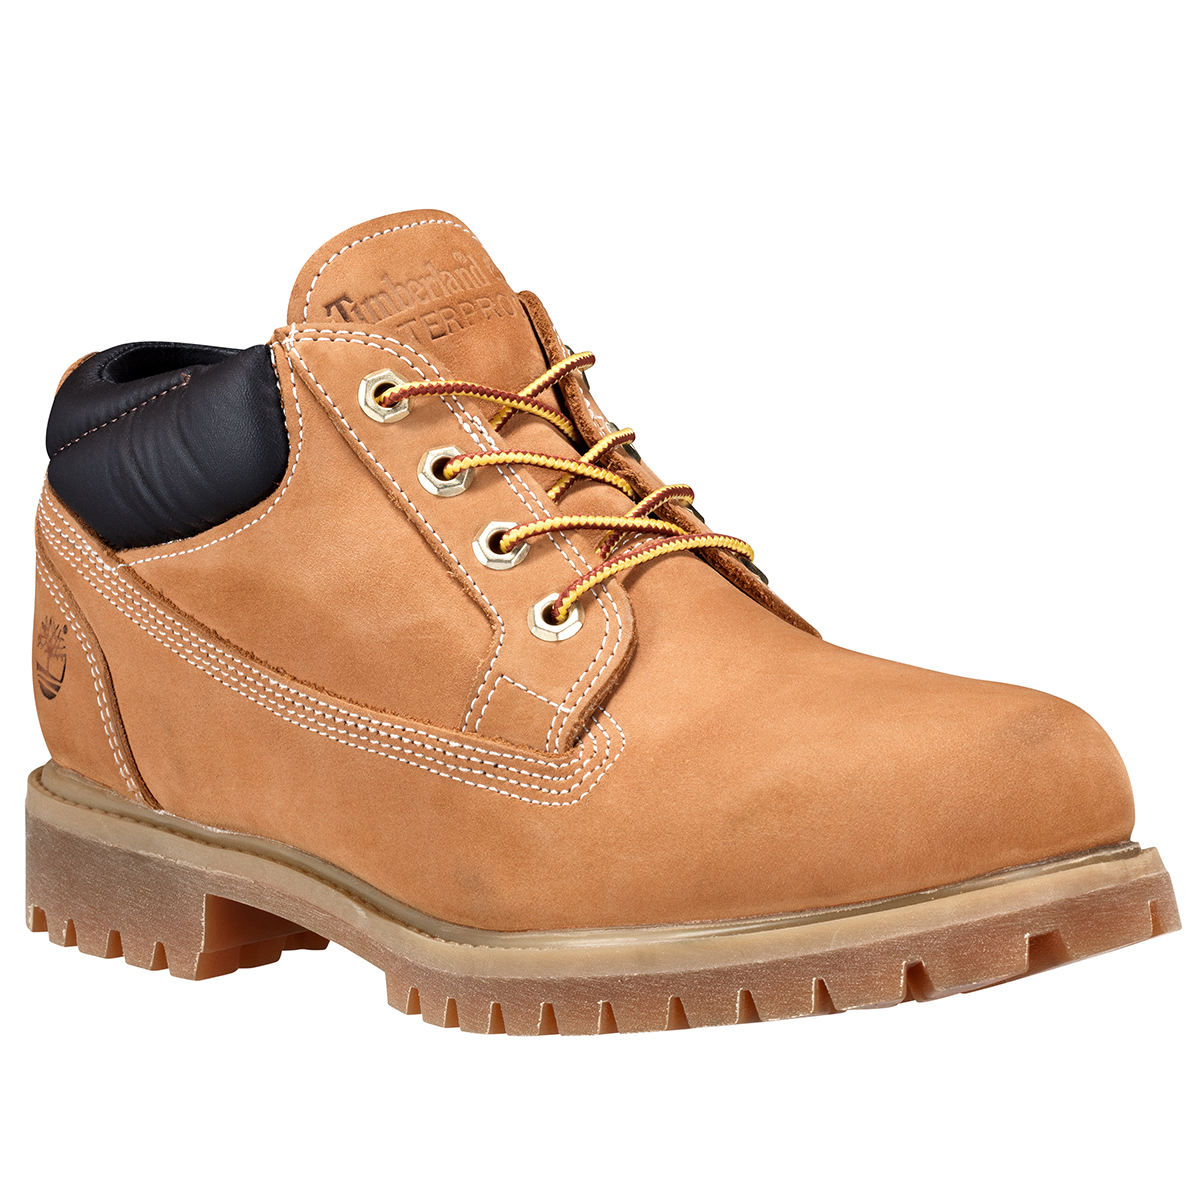 Timberland Men's Classic Oxford Waterproof Boot - Brown, 8.5